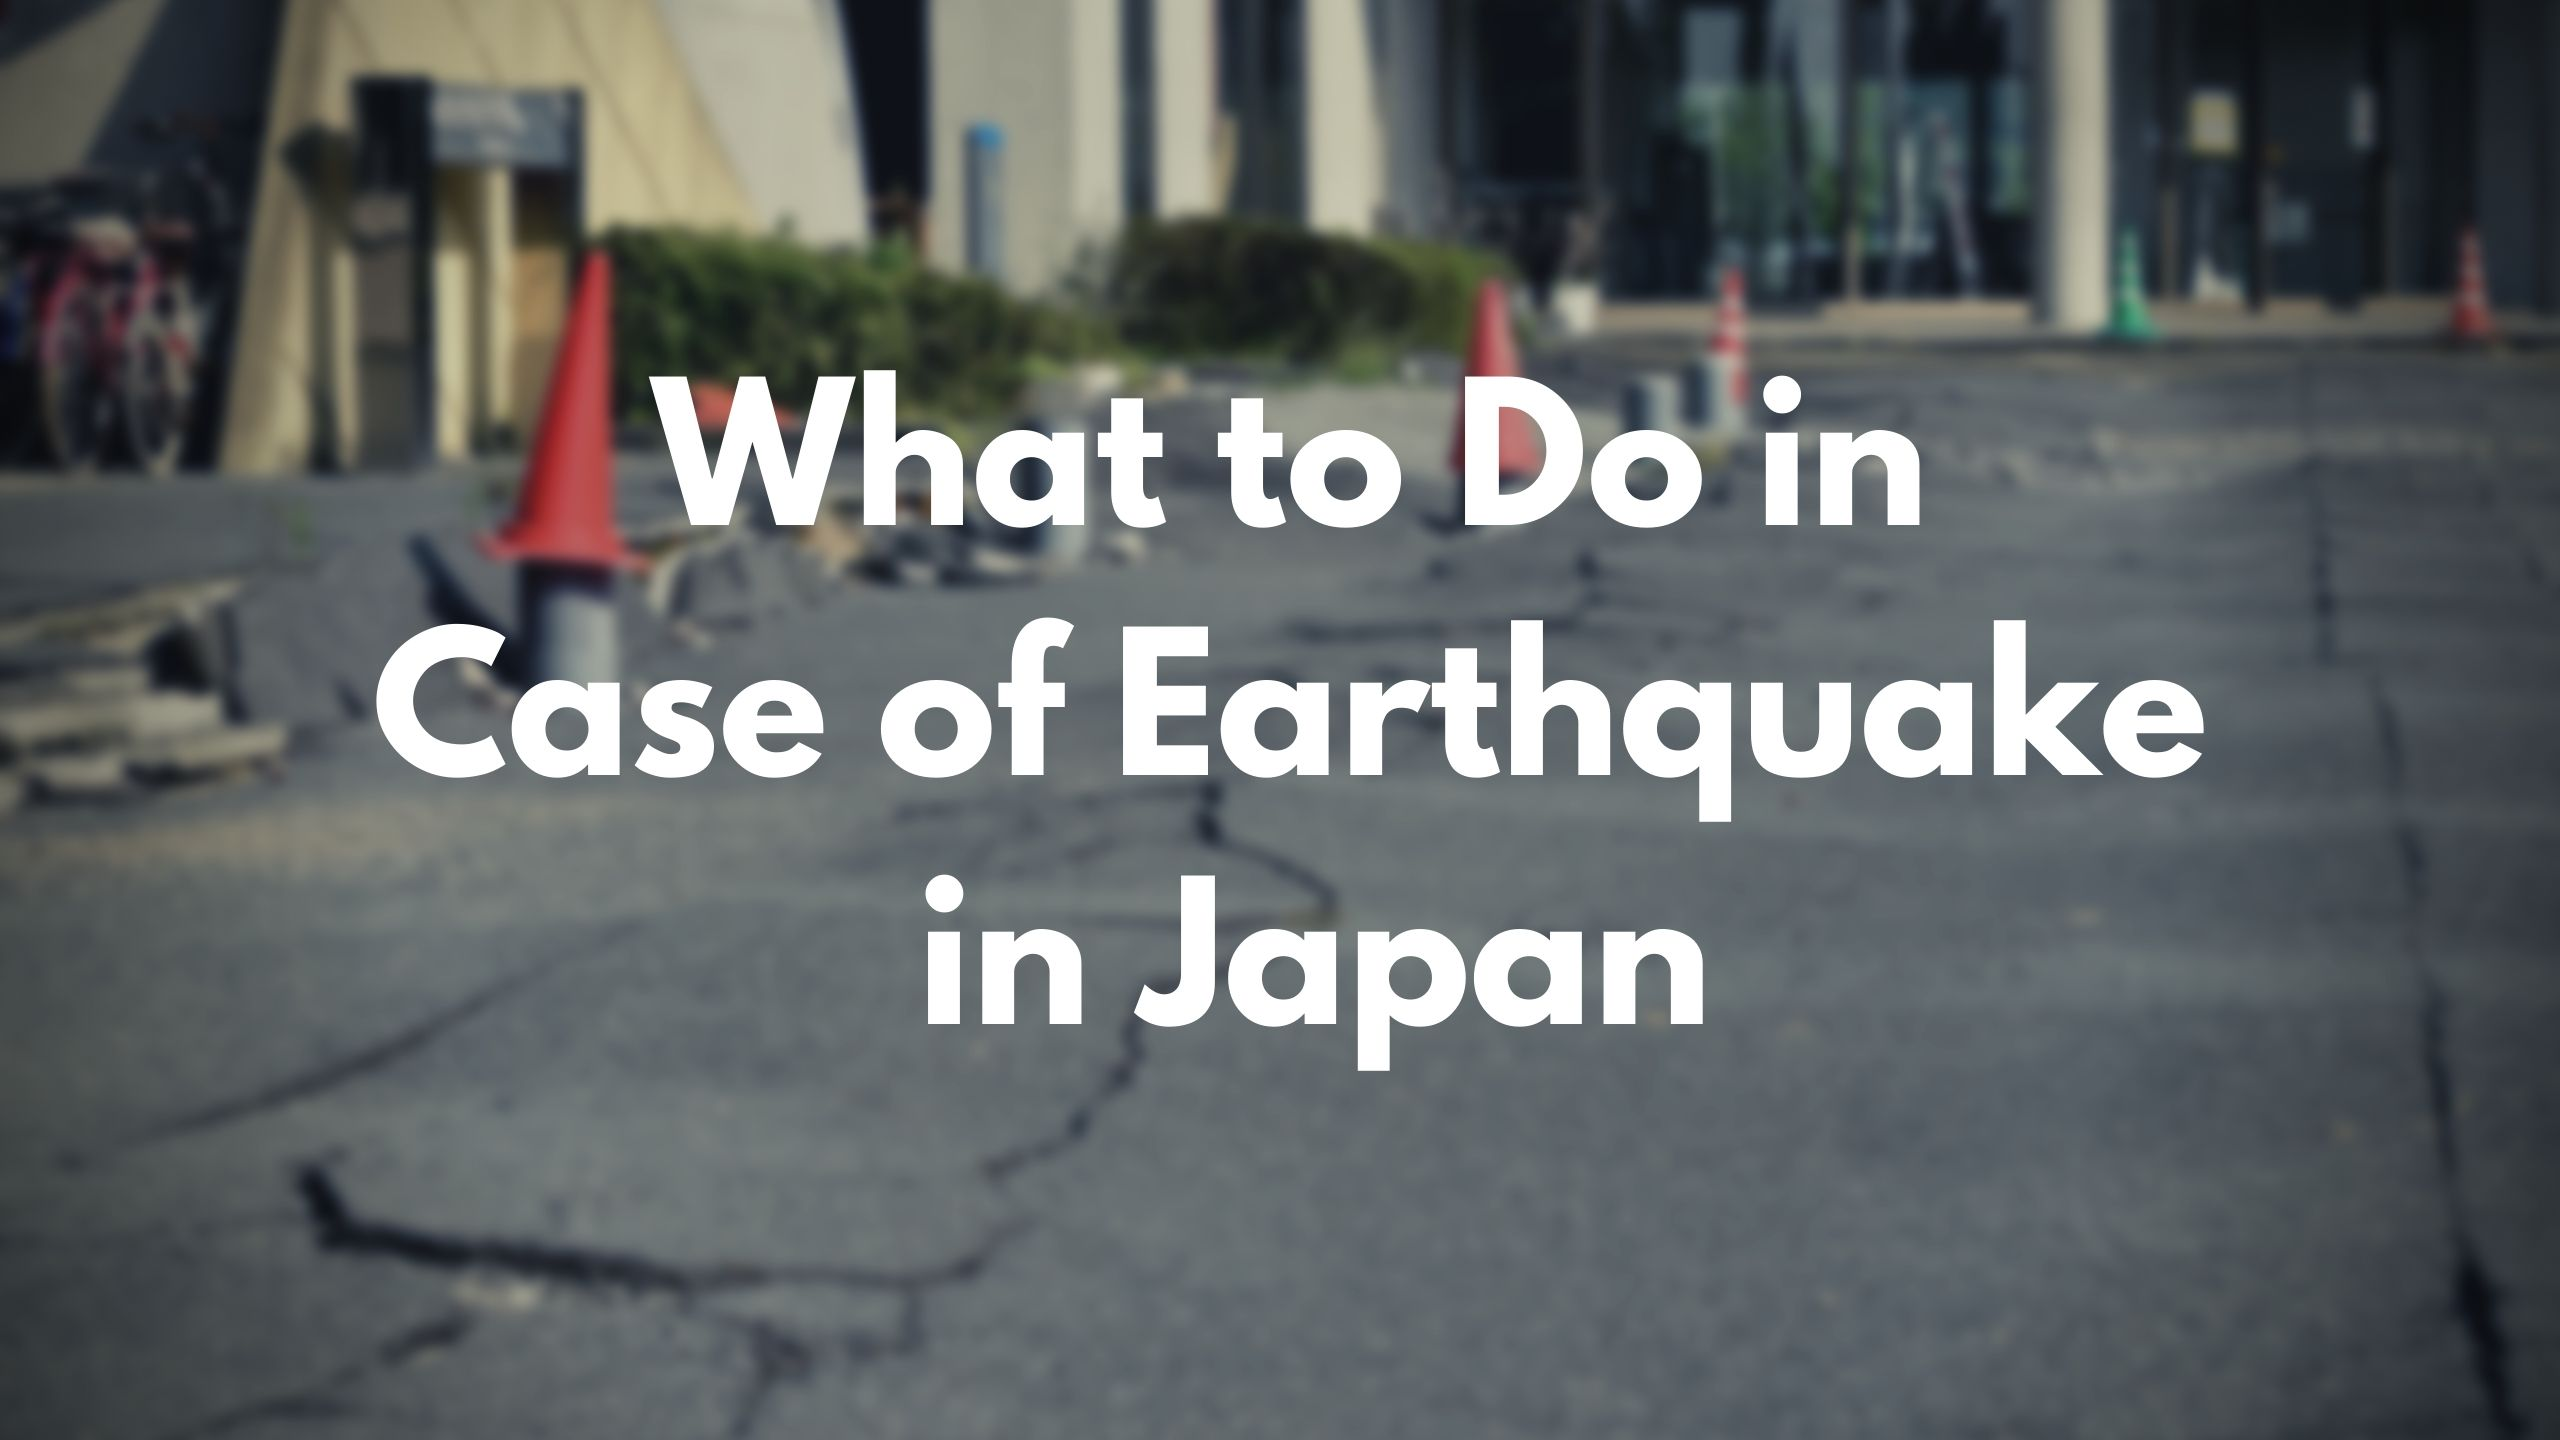 What to Do in Case of Earthquake in Japan